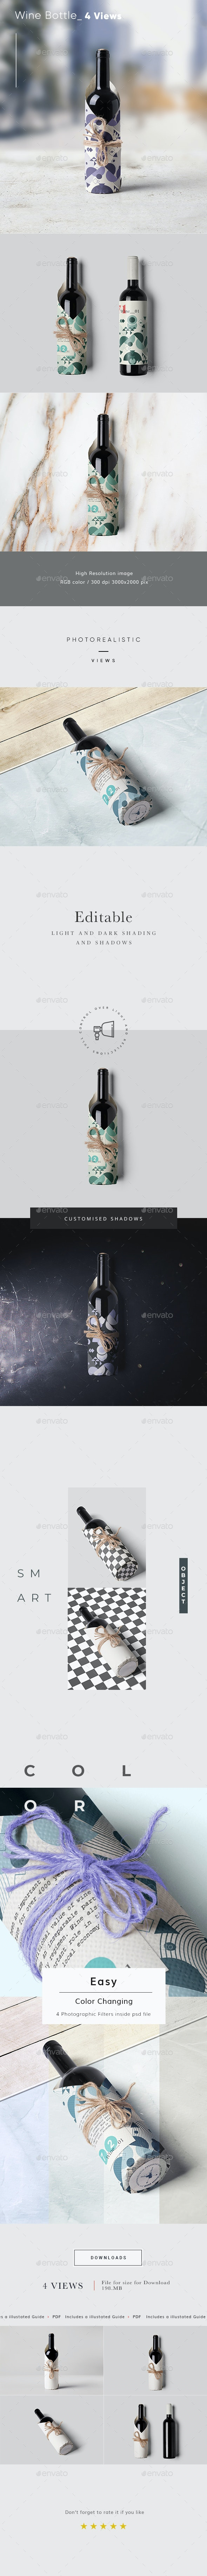 Wine Bottle Wrapping Mock-Up 3 - Food and Drink Packaging